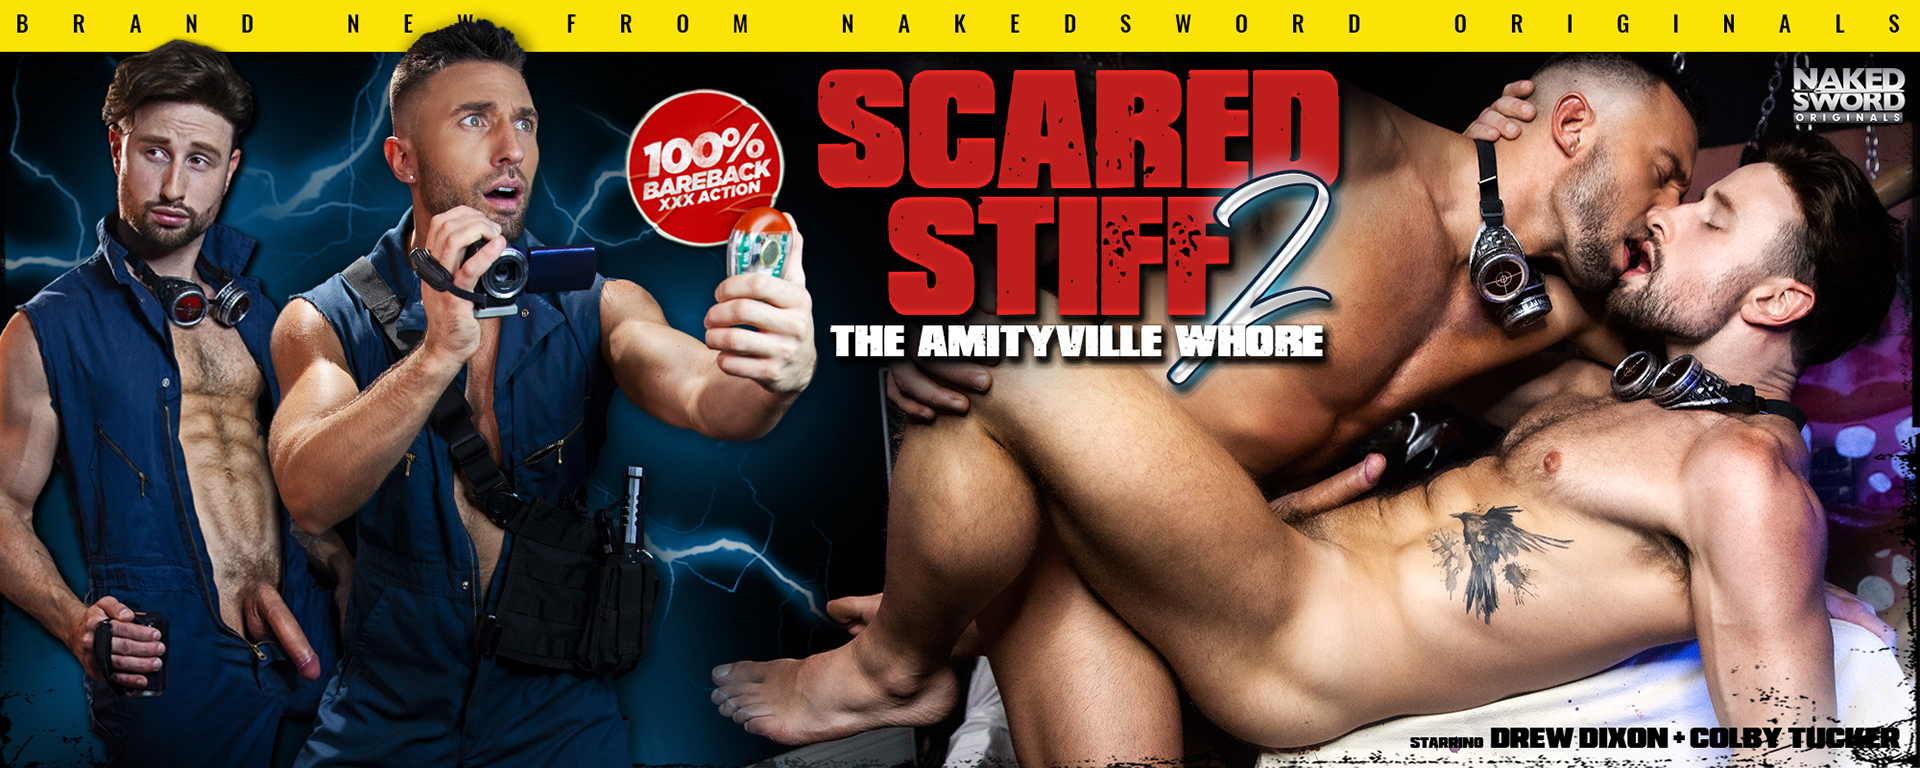 Scared Stiff 2: Amityville Whore Episode 4 Featuring Colby Tucker and Drew Dixon